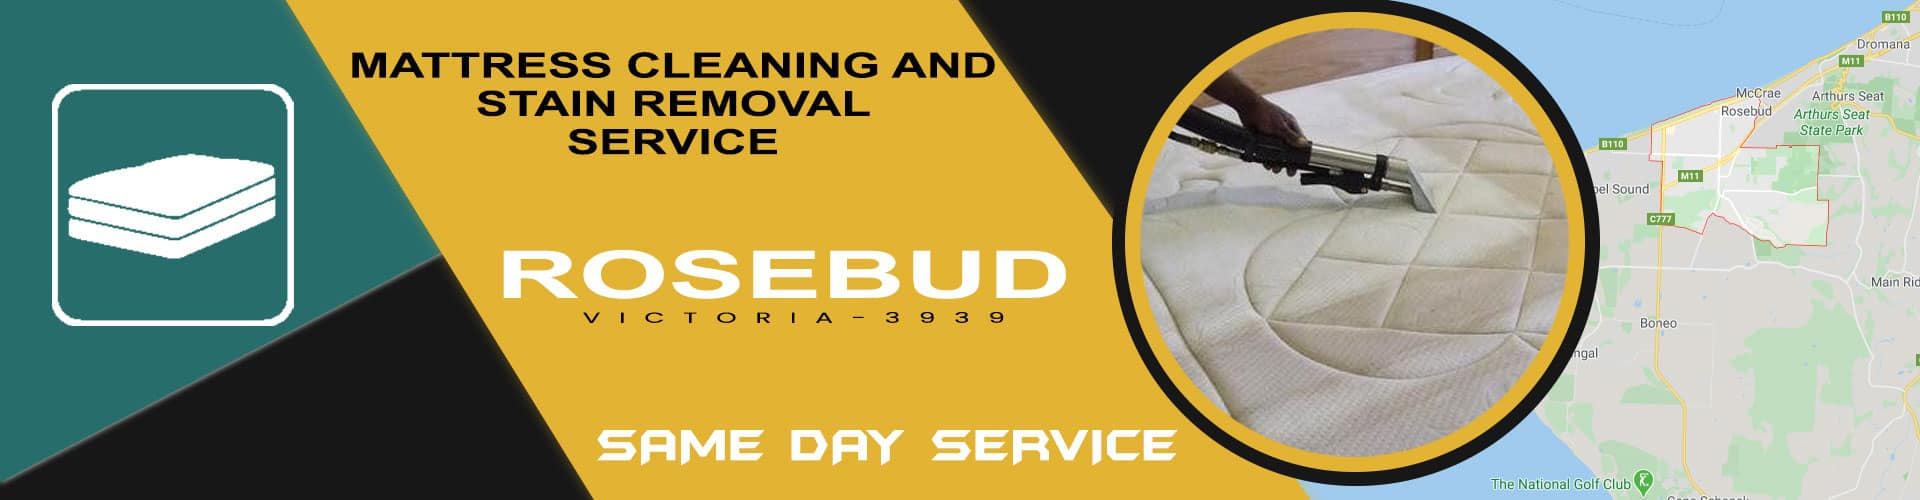 Mattress Cleaning and Stain Removal Rosebud